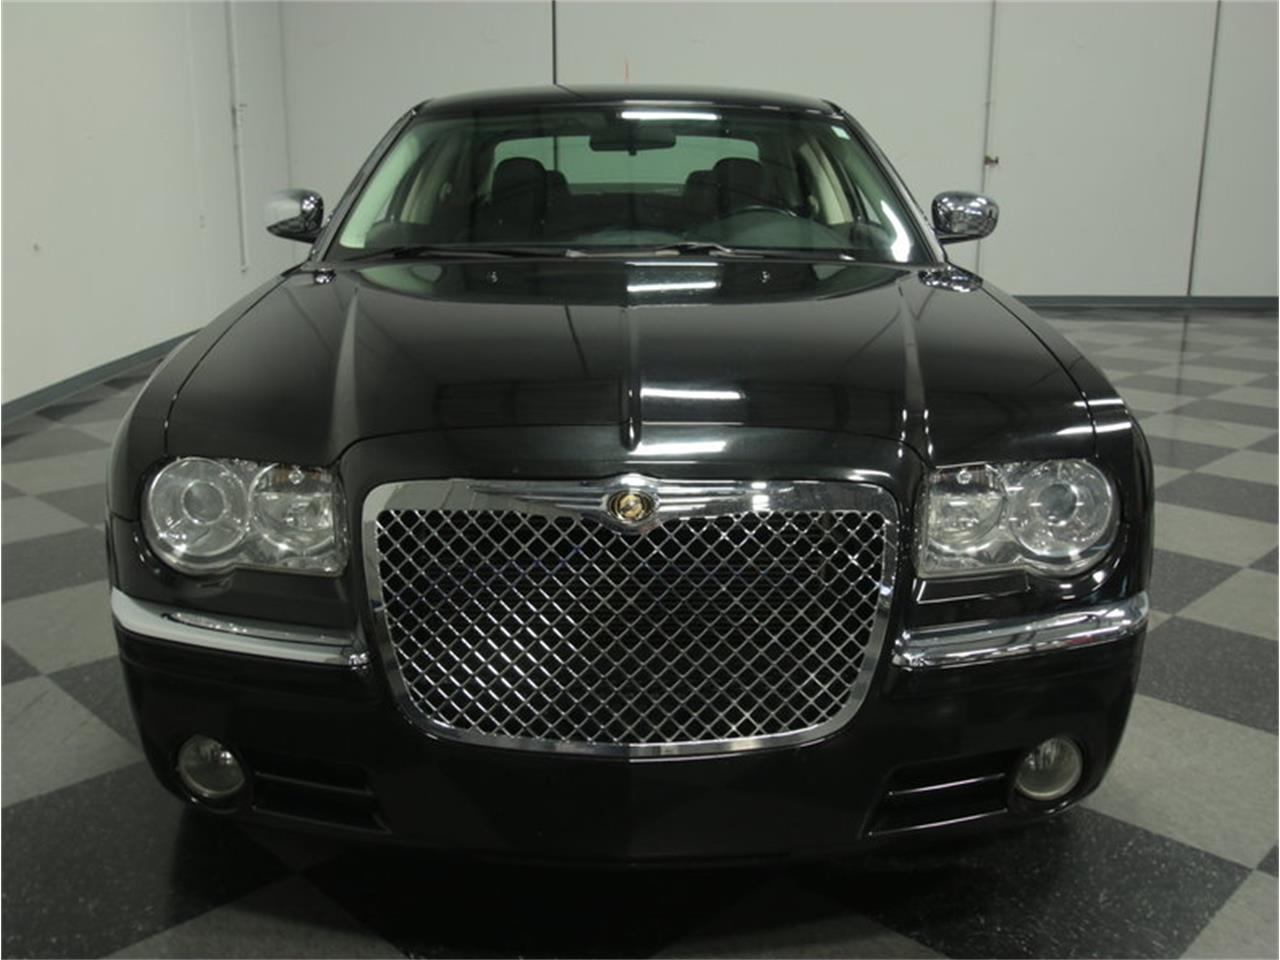 chrysler 300 2008 dub edition touring classic lithia springs georgia cc classiccars financing inspection insurance transport